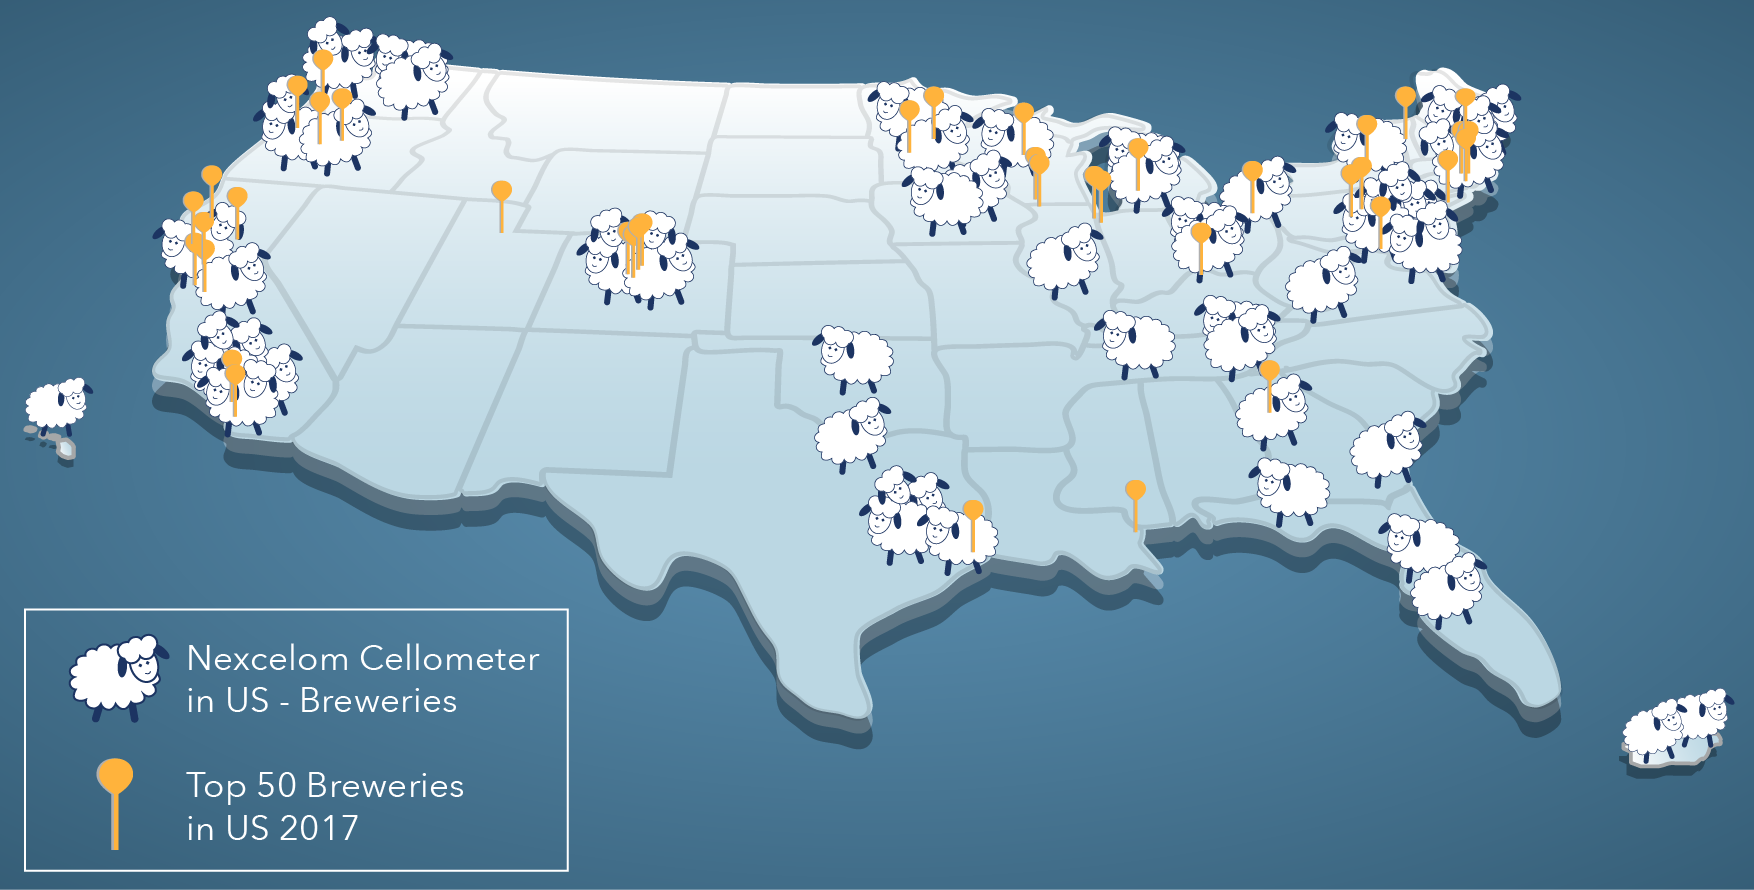 US map showing Cellometer yeast cell counters and top 50 breweries